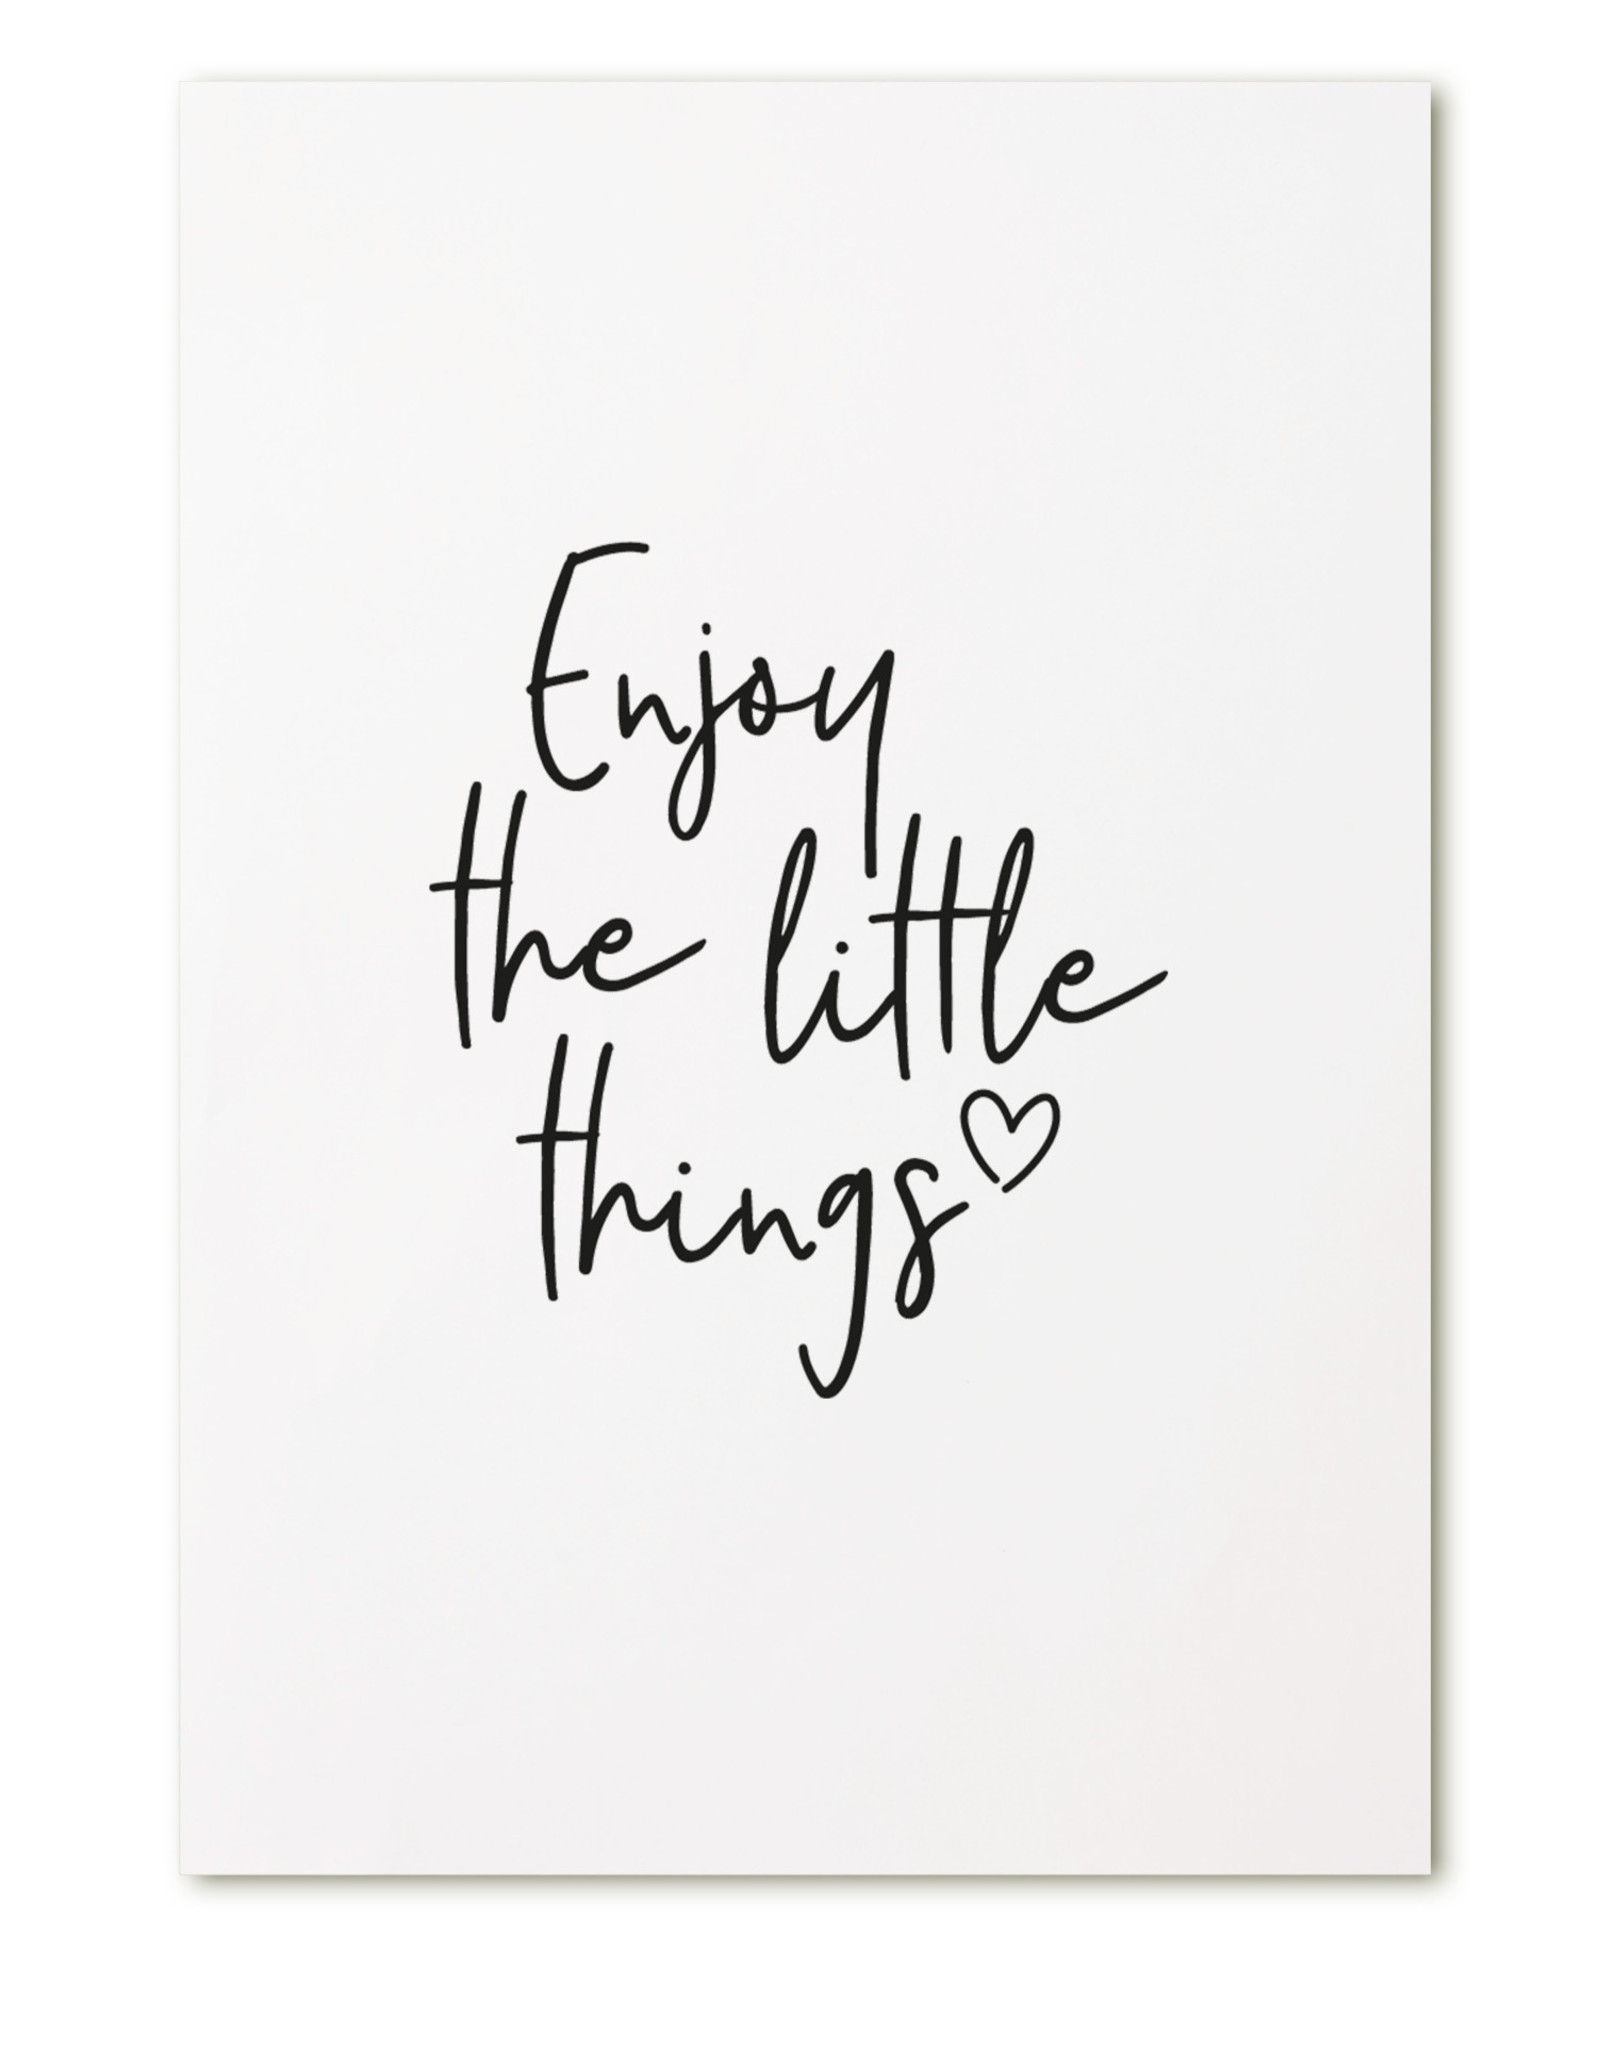 zoedt kaart a6 Zoedt: enjoy the little things